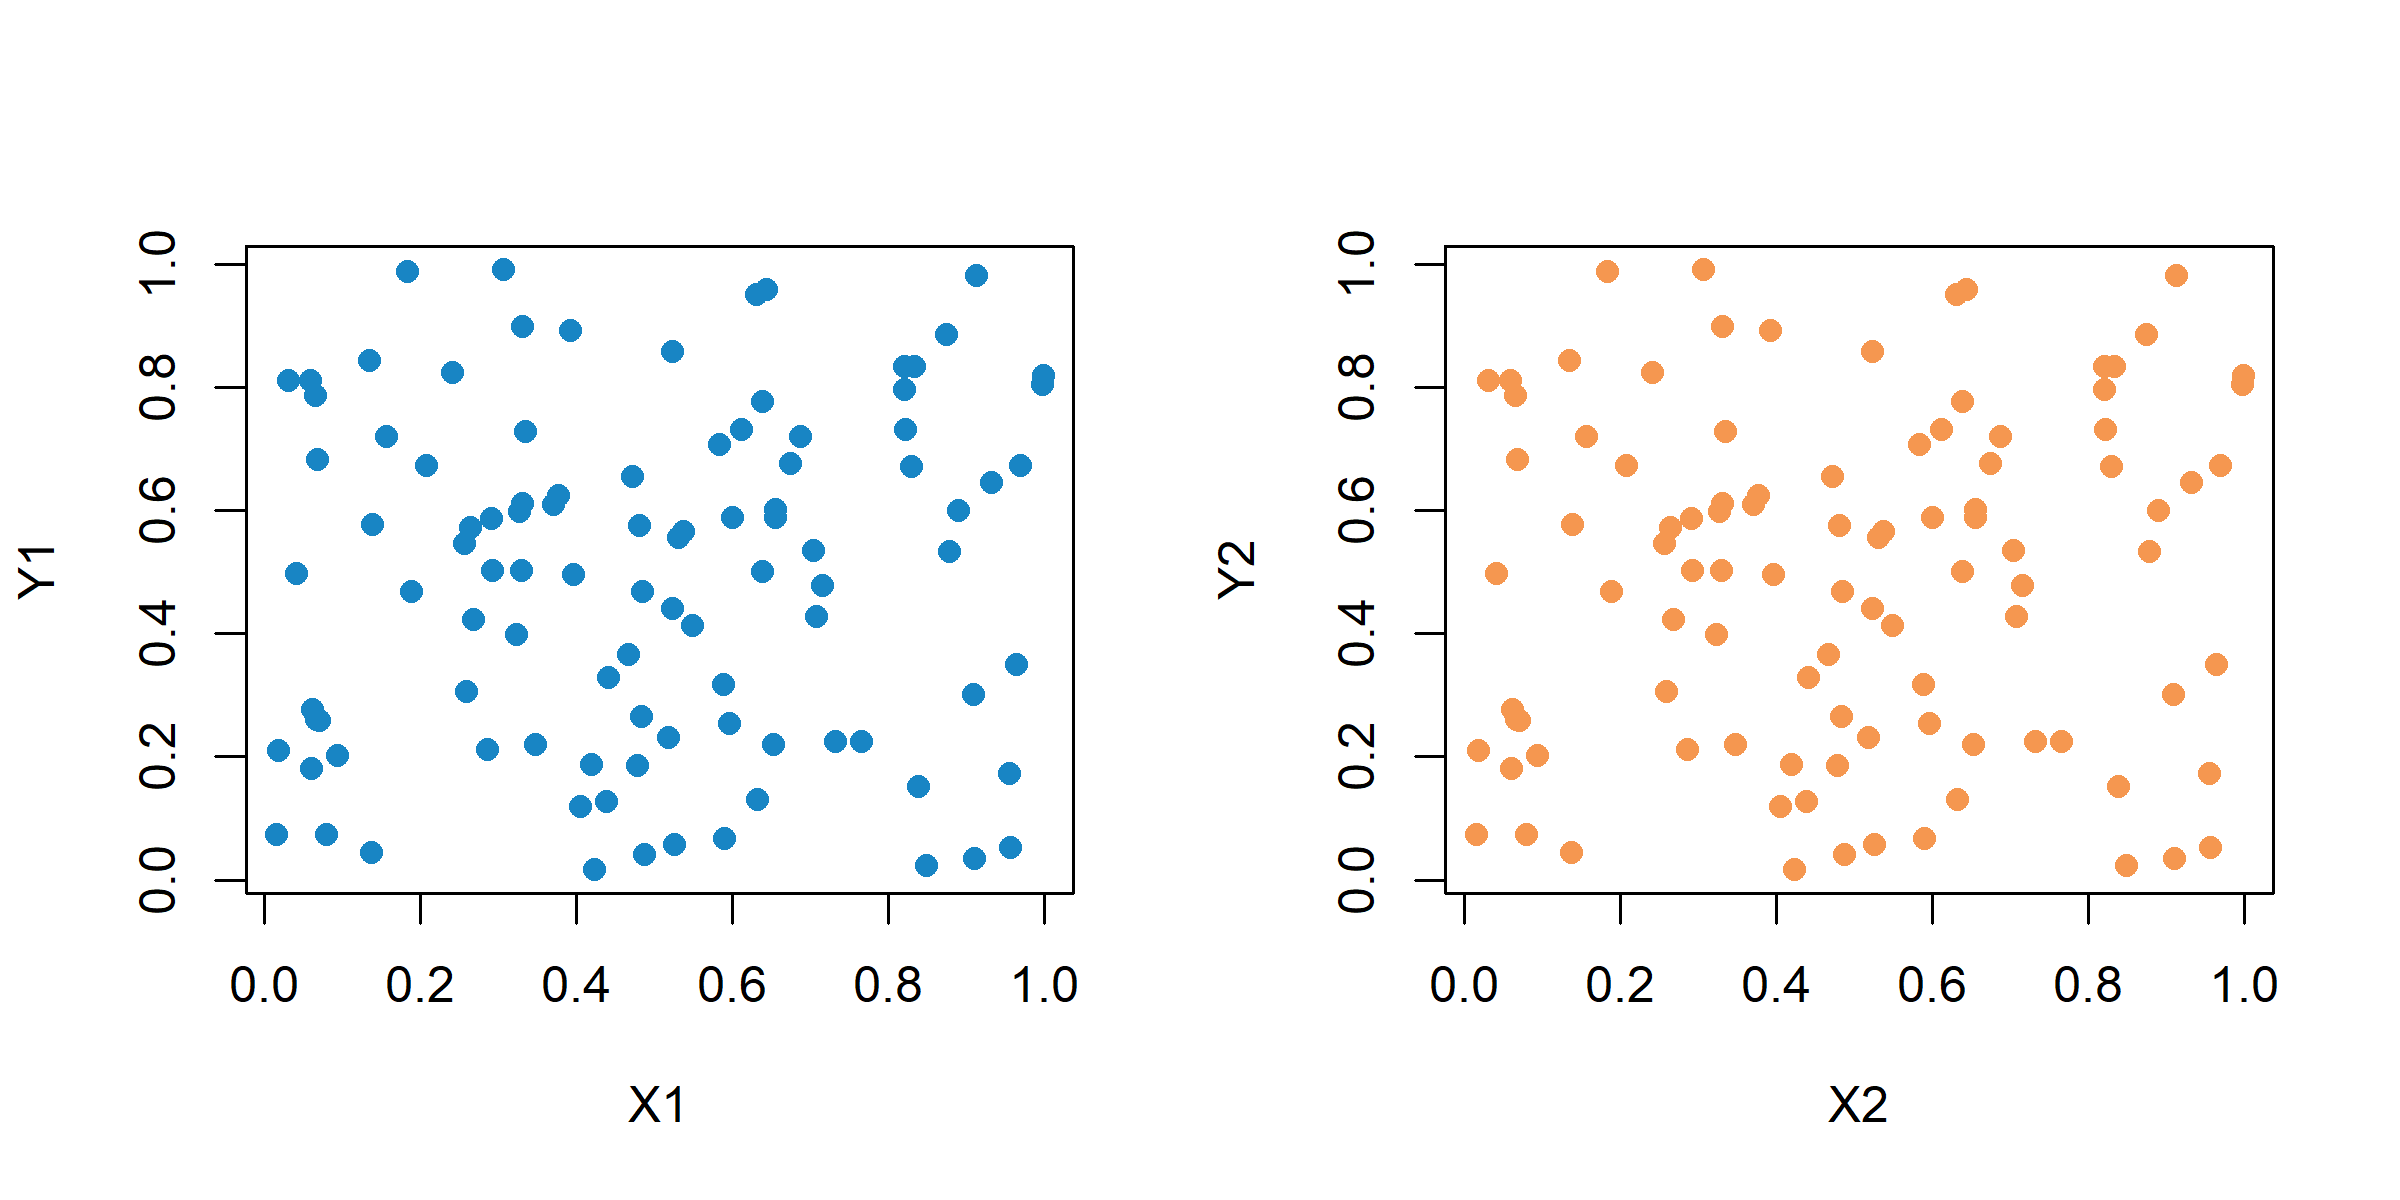 Sharing axes with common legend in R – The Cake is a Lie